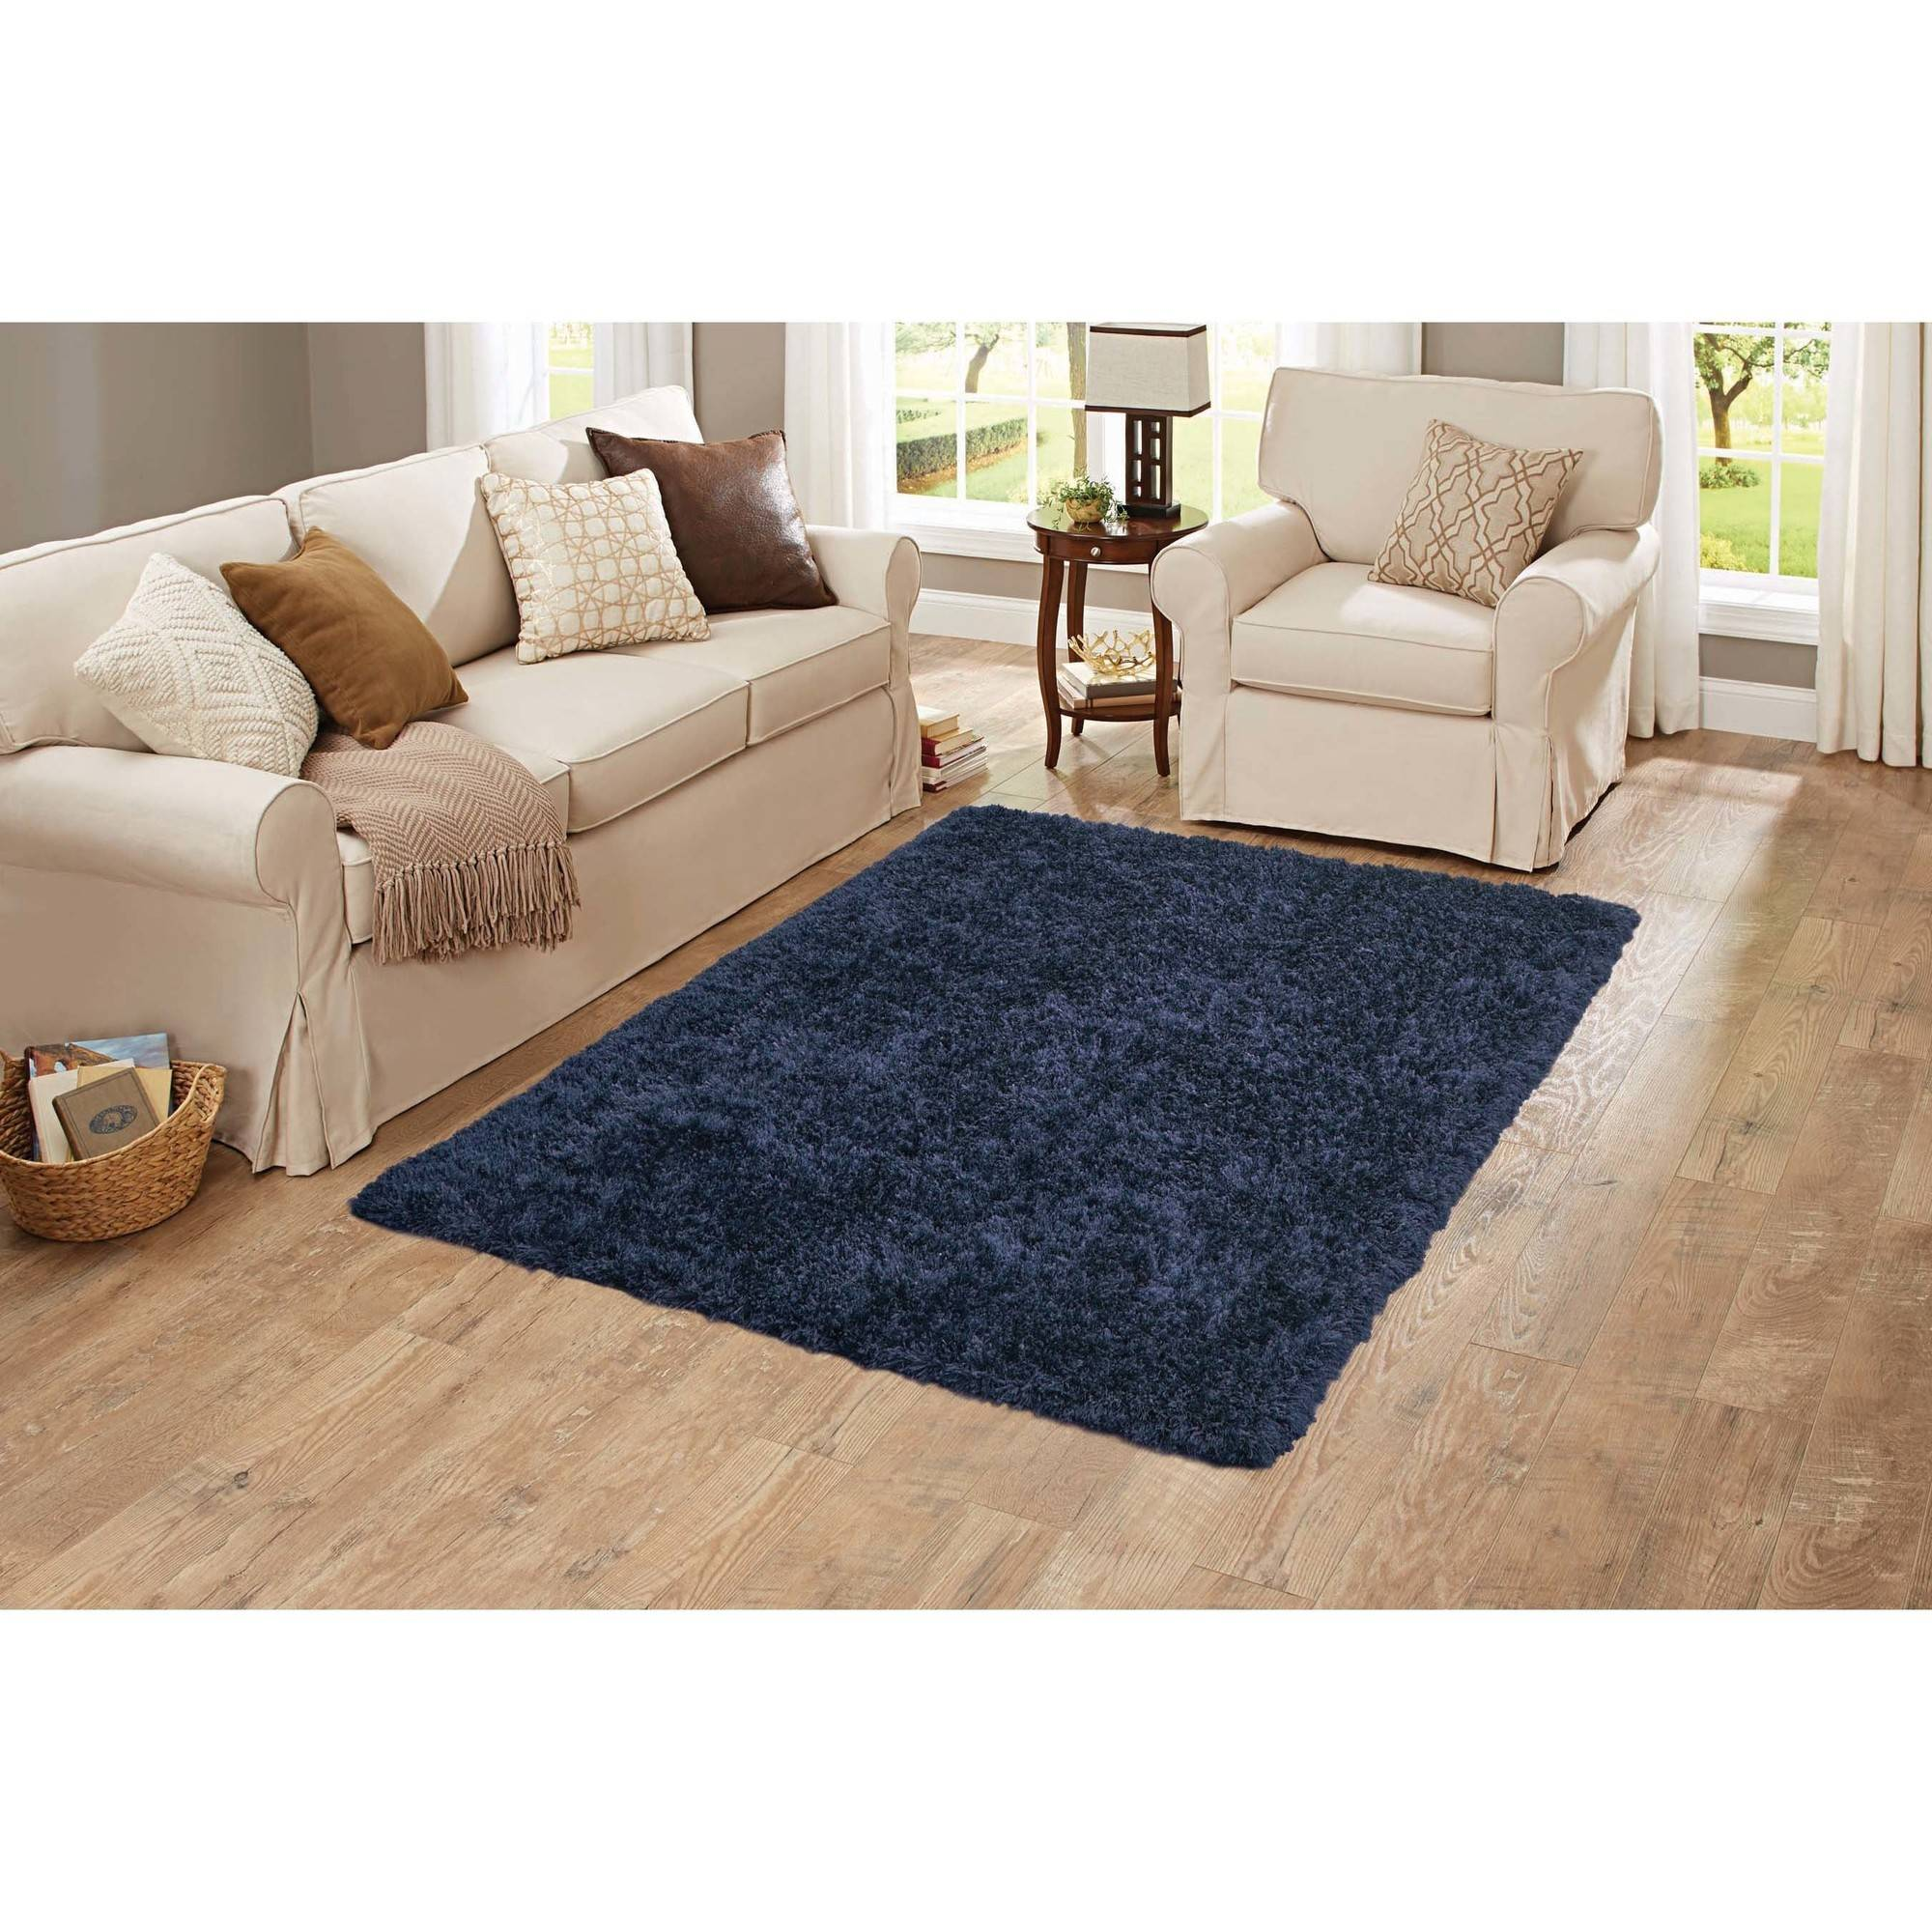 Better Homes and Gardens Shag Accent Rug, Navy by Welspun